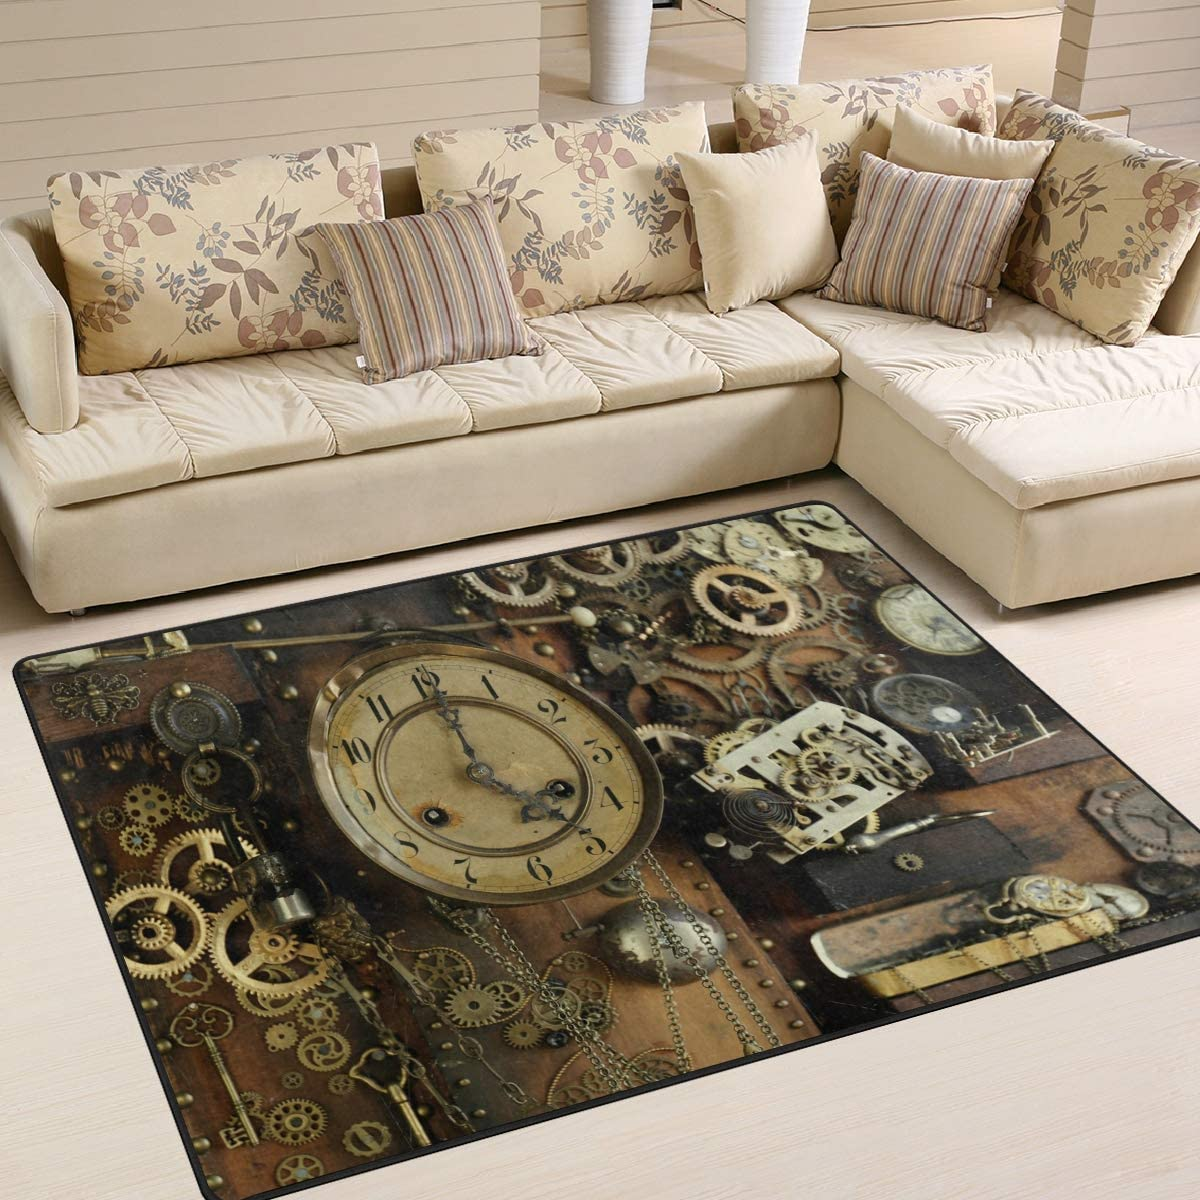 ALAZA Vintage Steampunk Ancient Gears Area Rug Rugs for Living Room Bedroom 5 3 x4